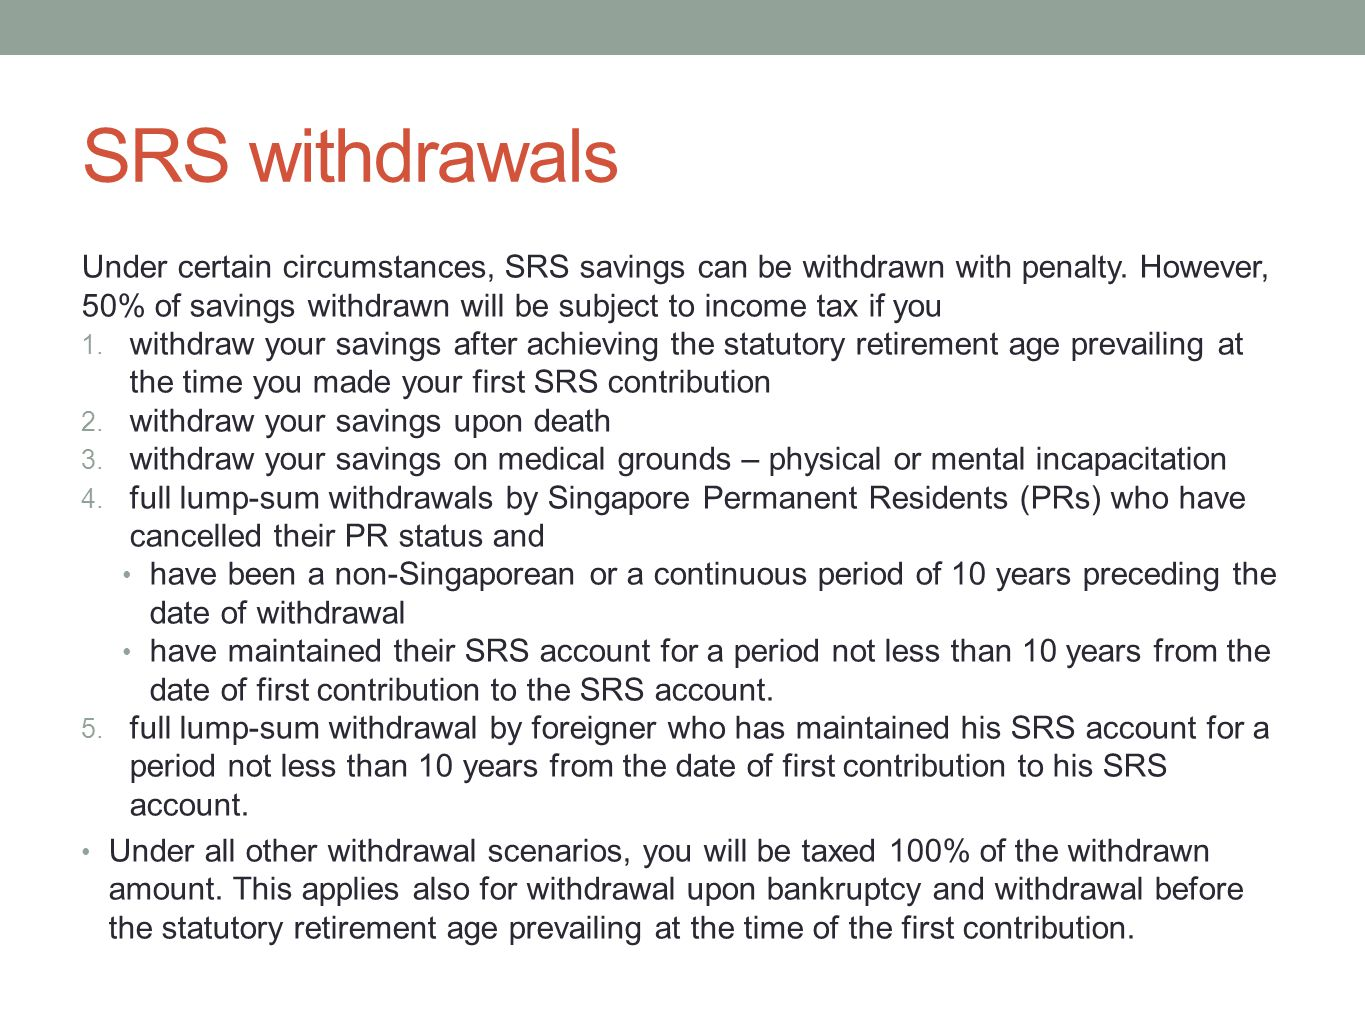 SRS withdrawals Under certain circumstances, SRS savings can be withdrawn with penalty. However, 50% of savings withdrawn will be subject to income ta